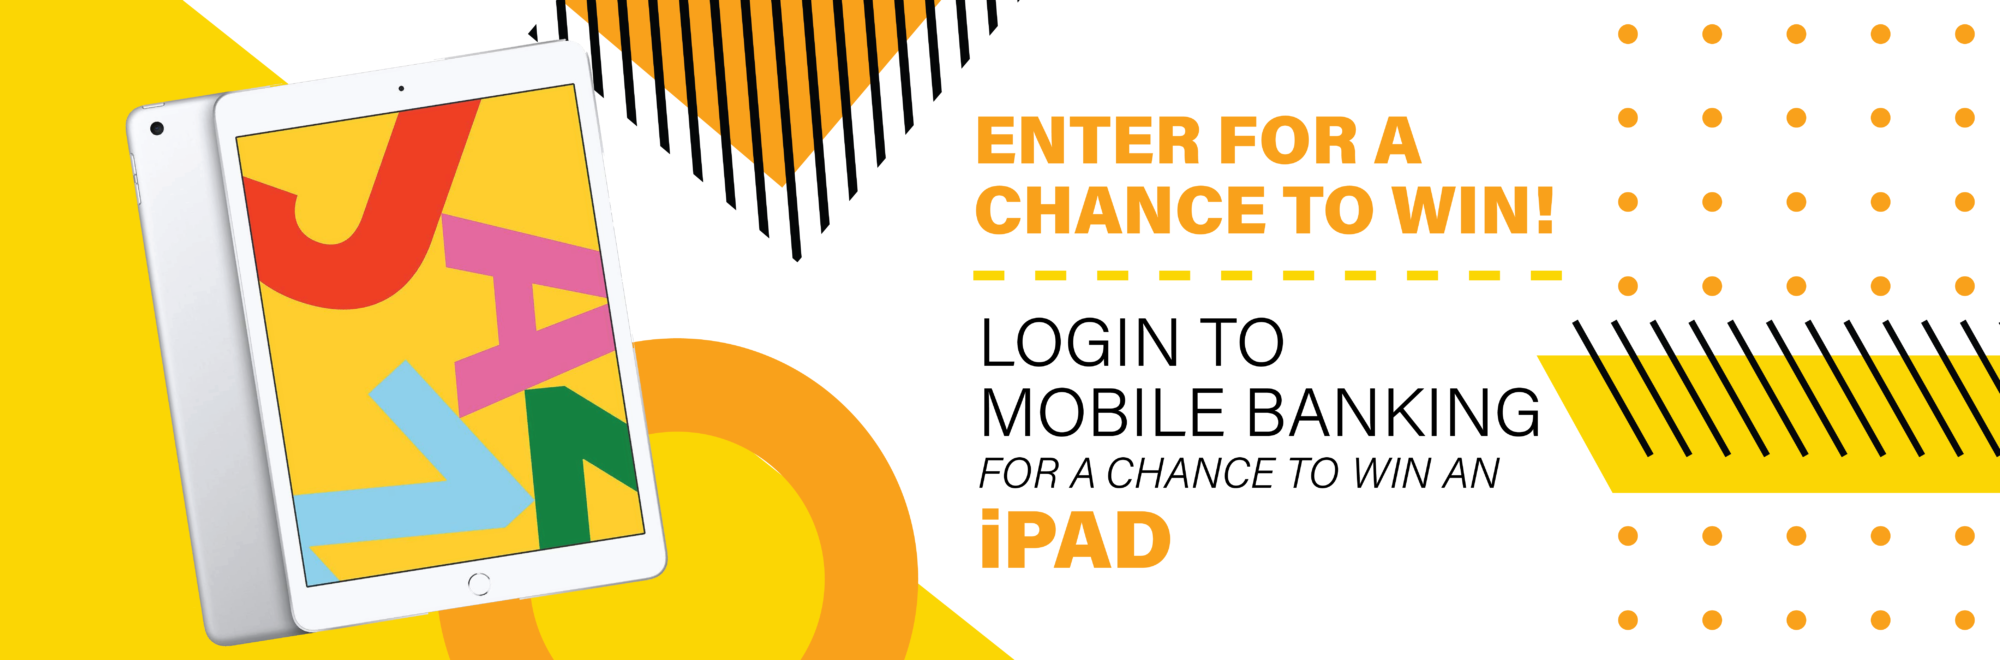 Enter for a chance to win an iPad by logging into Mobile Banking on the SACFCU mobile app